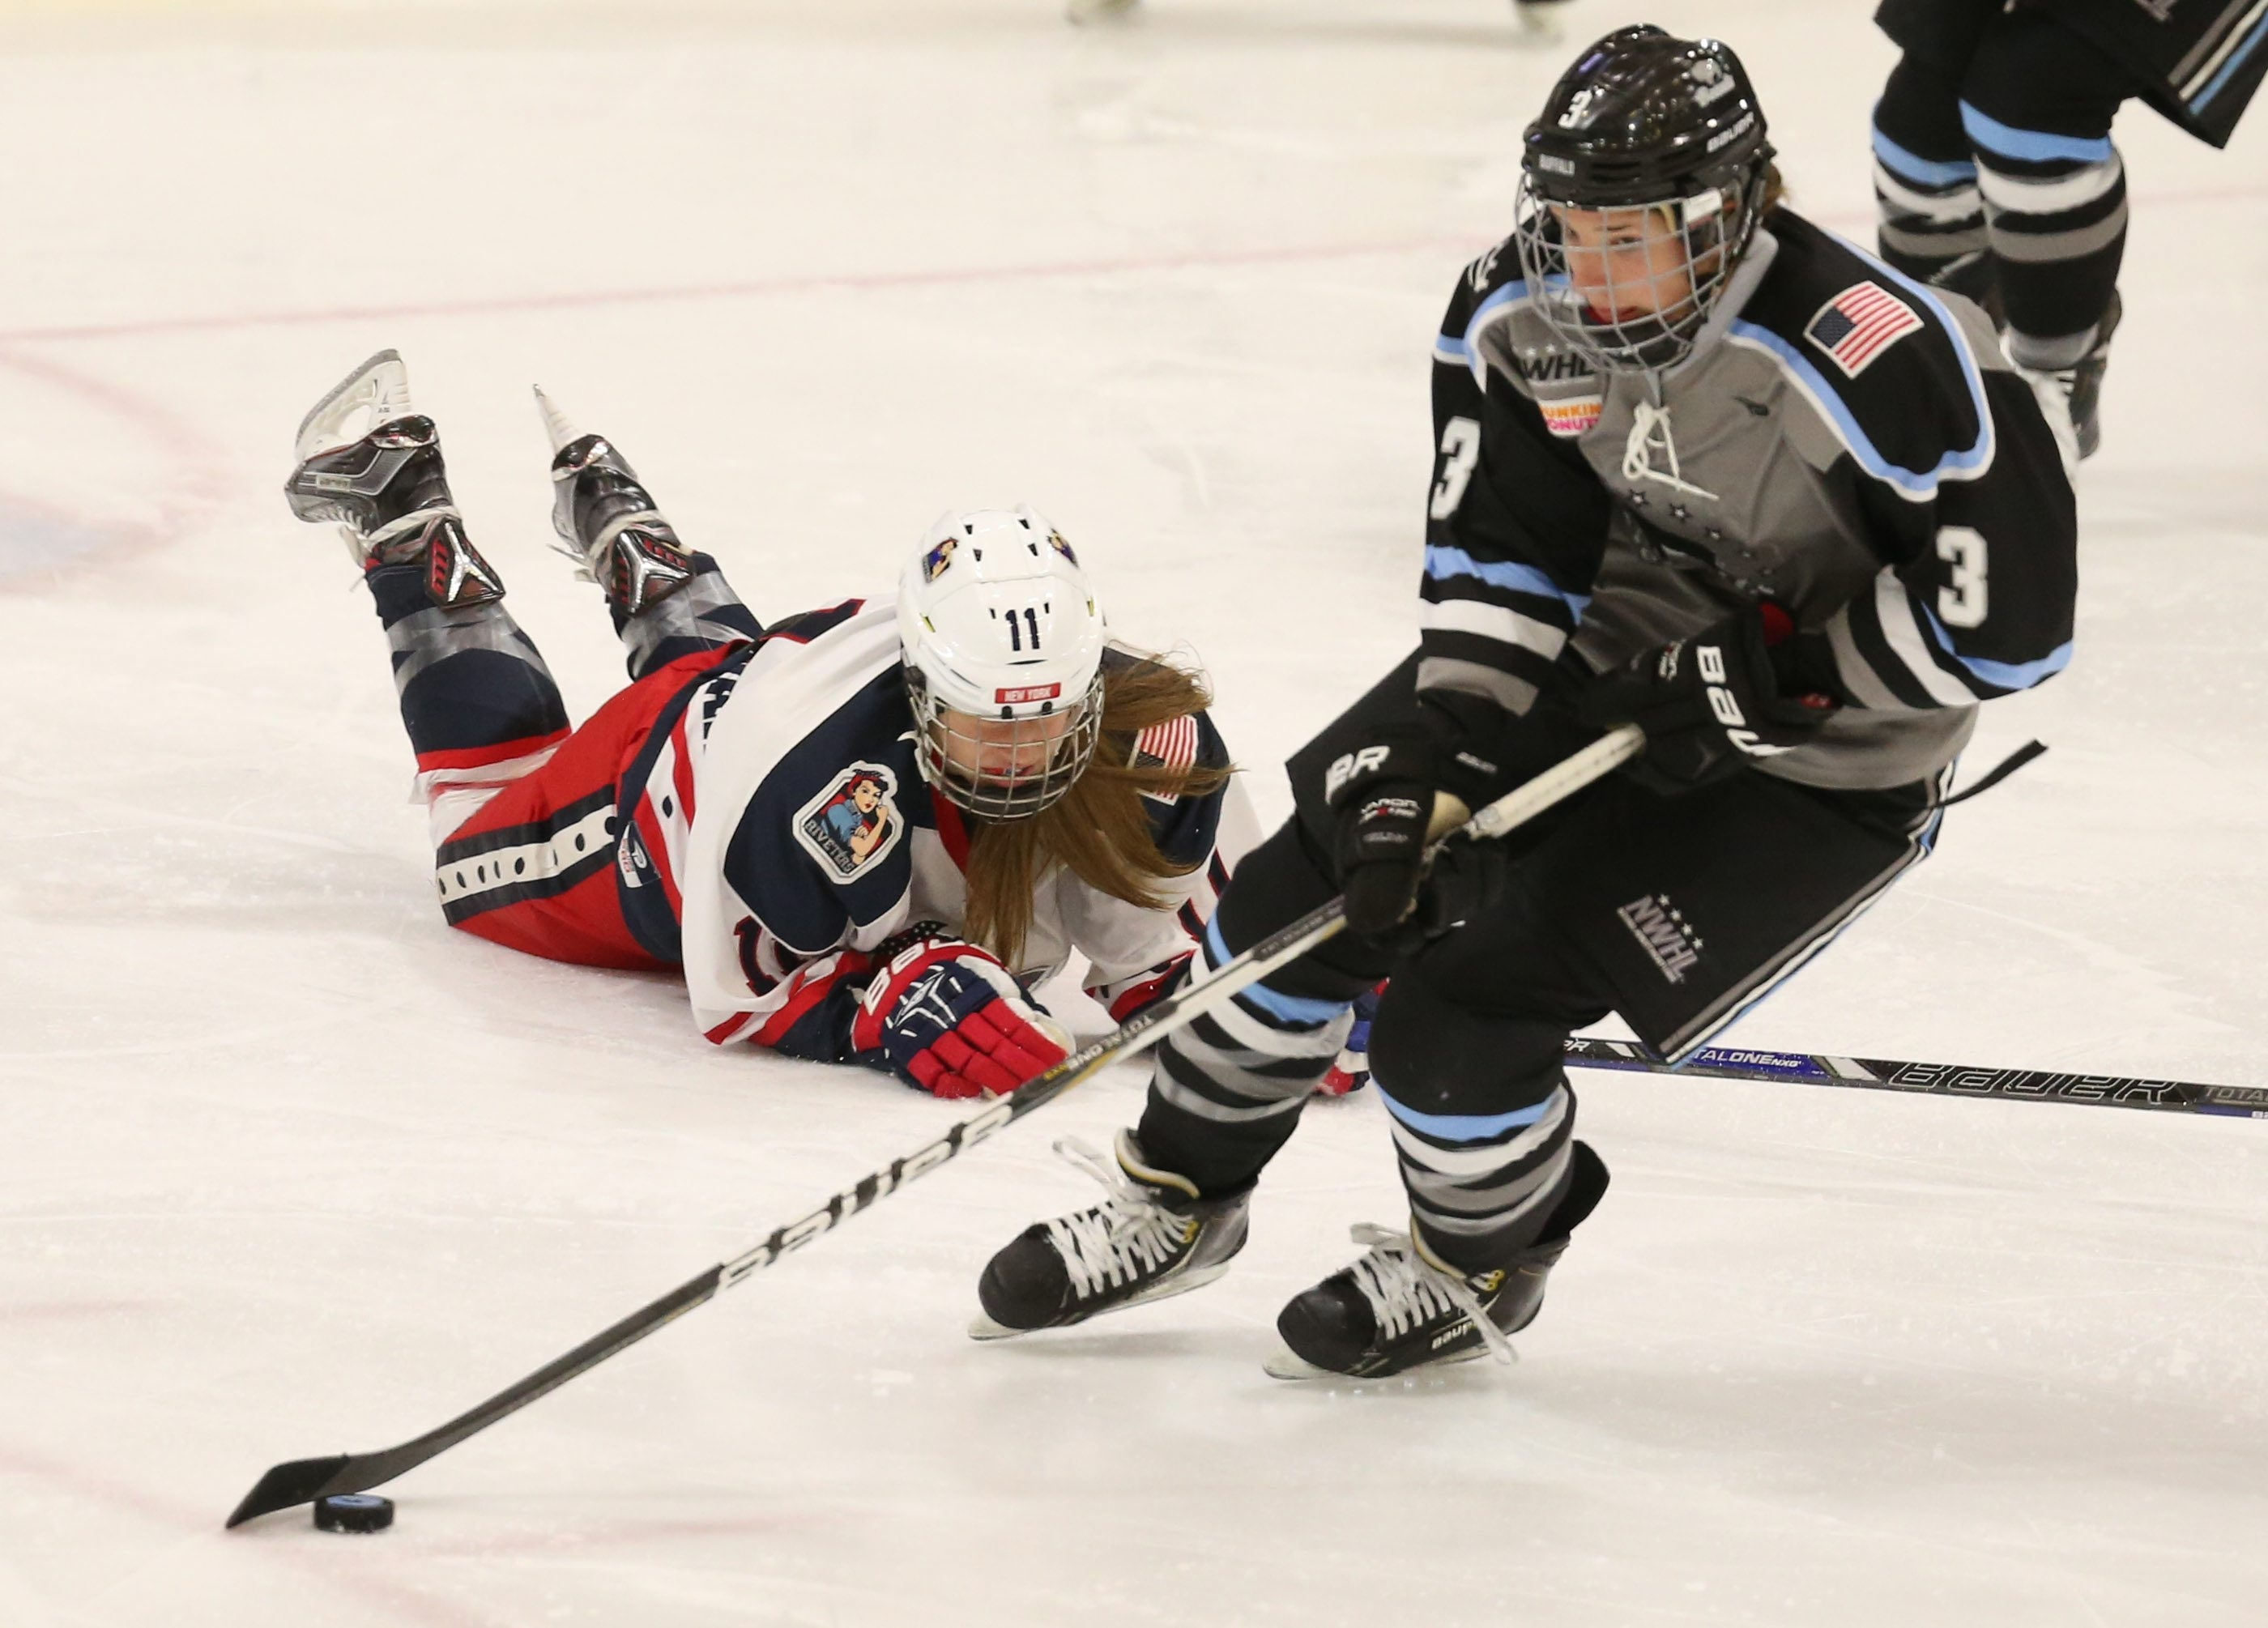 Kelly Steadman of the Buffalo Beauts, left, battles New York Riveters Morgan Fritz-Ward for the puck in a National Women's Hockey League game in February.